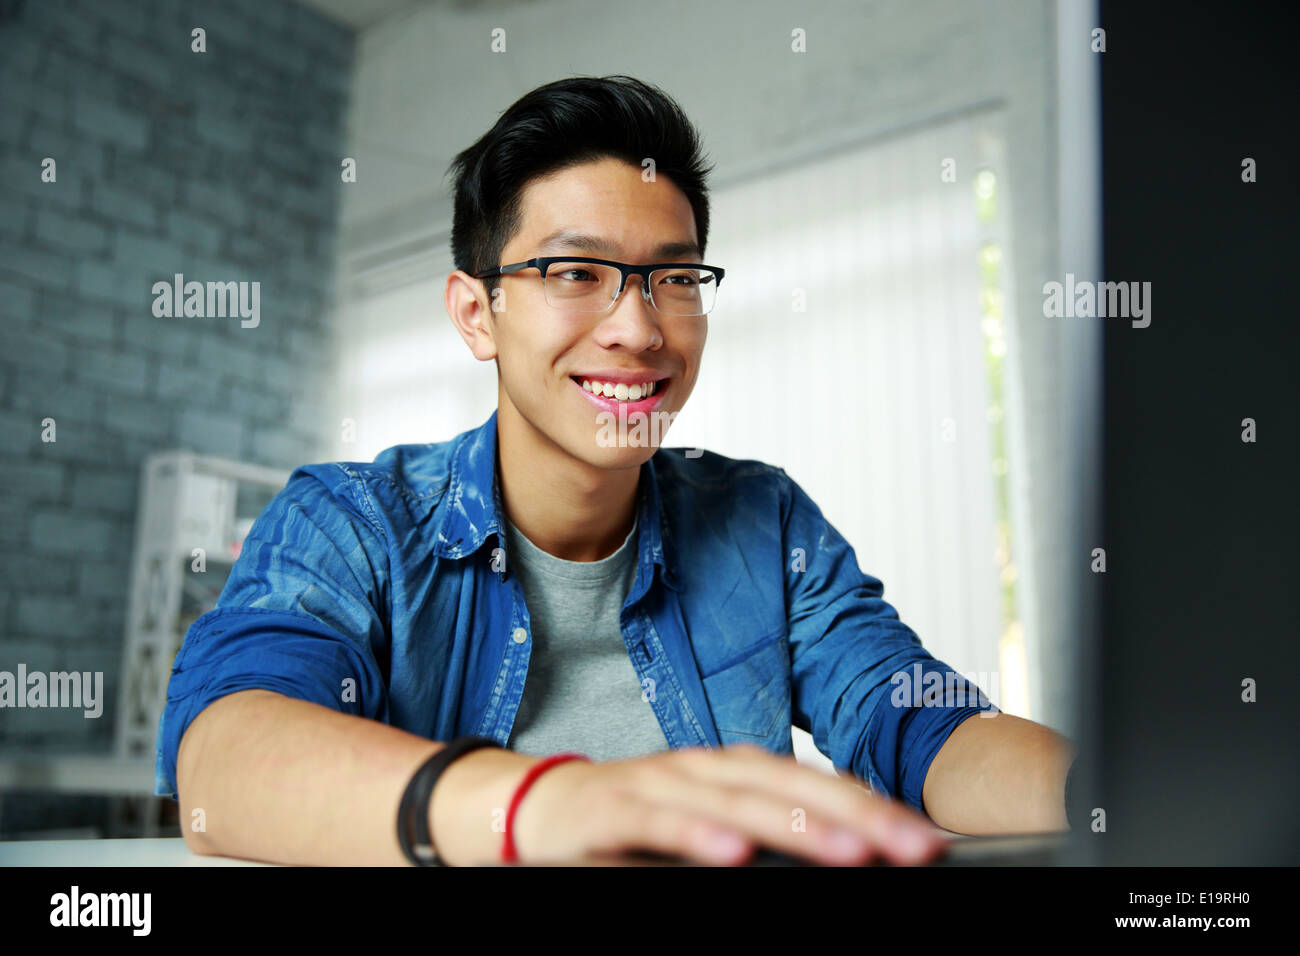 Happy young asian man working at office Photo Stock